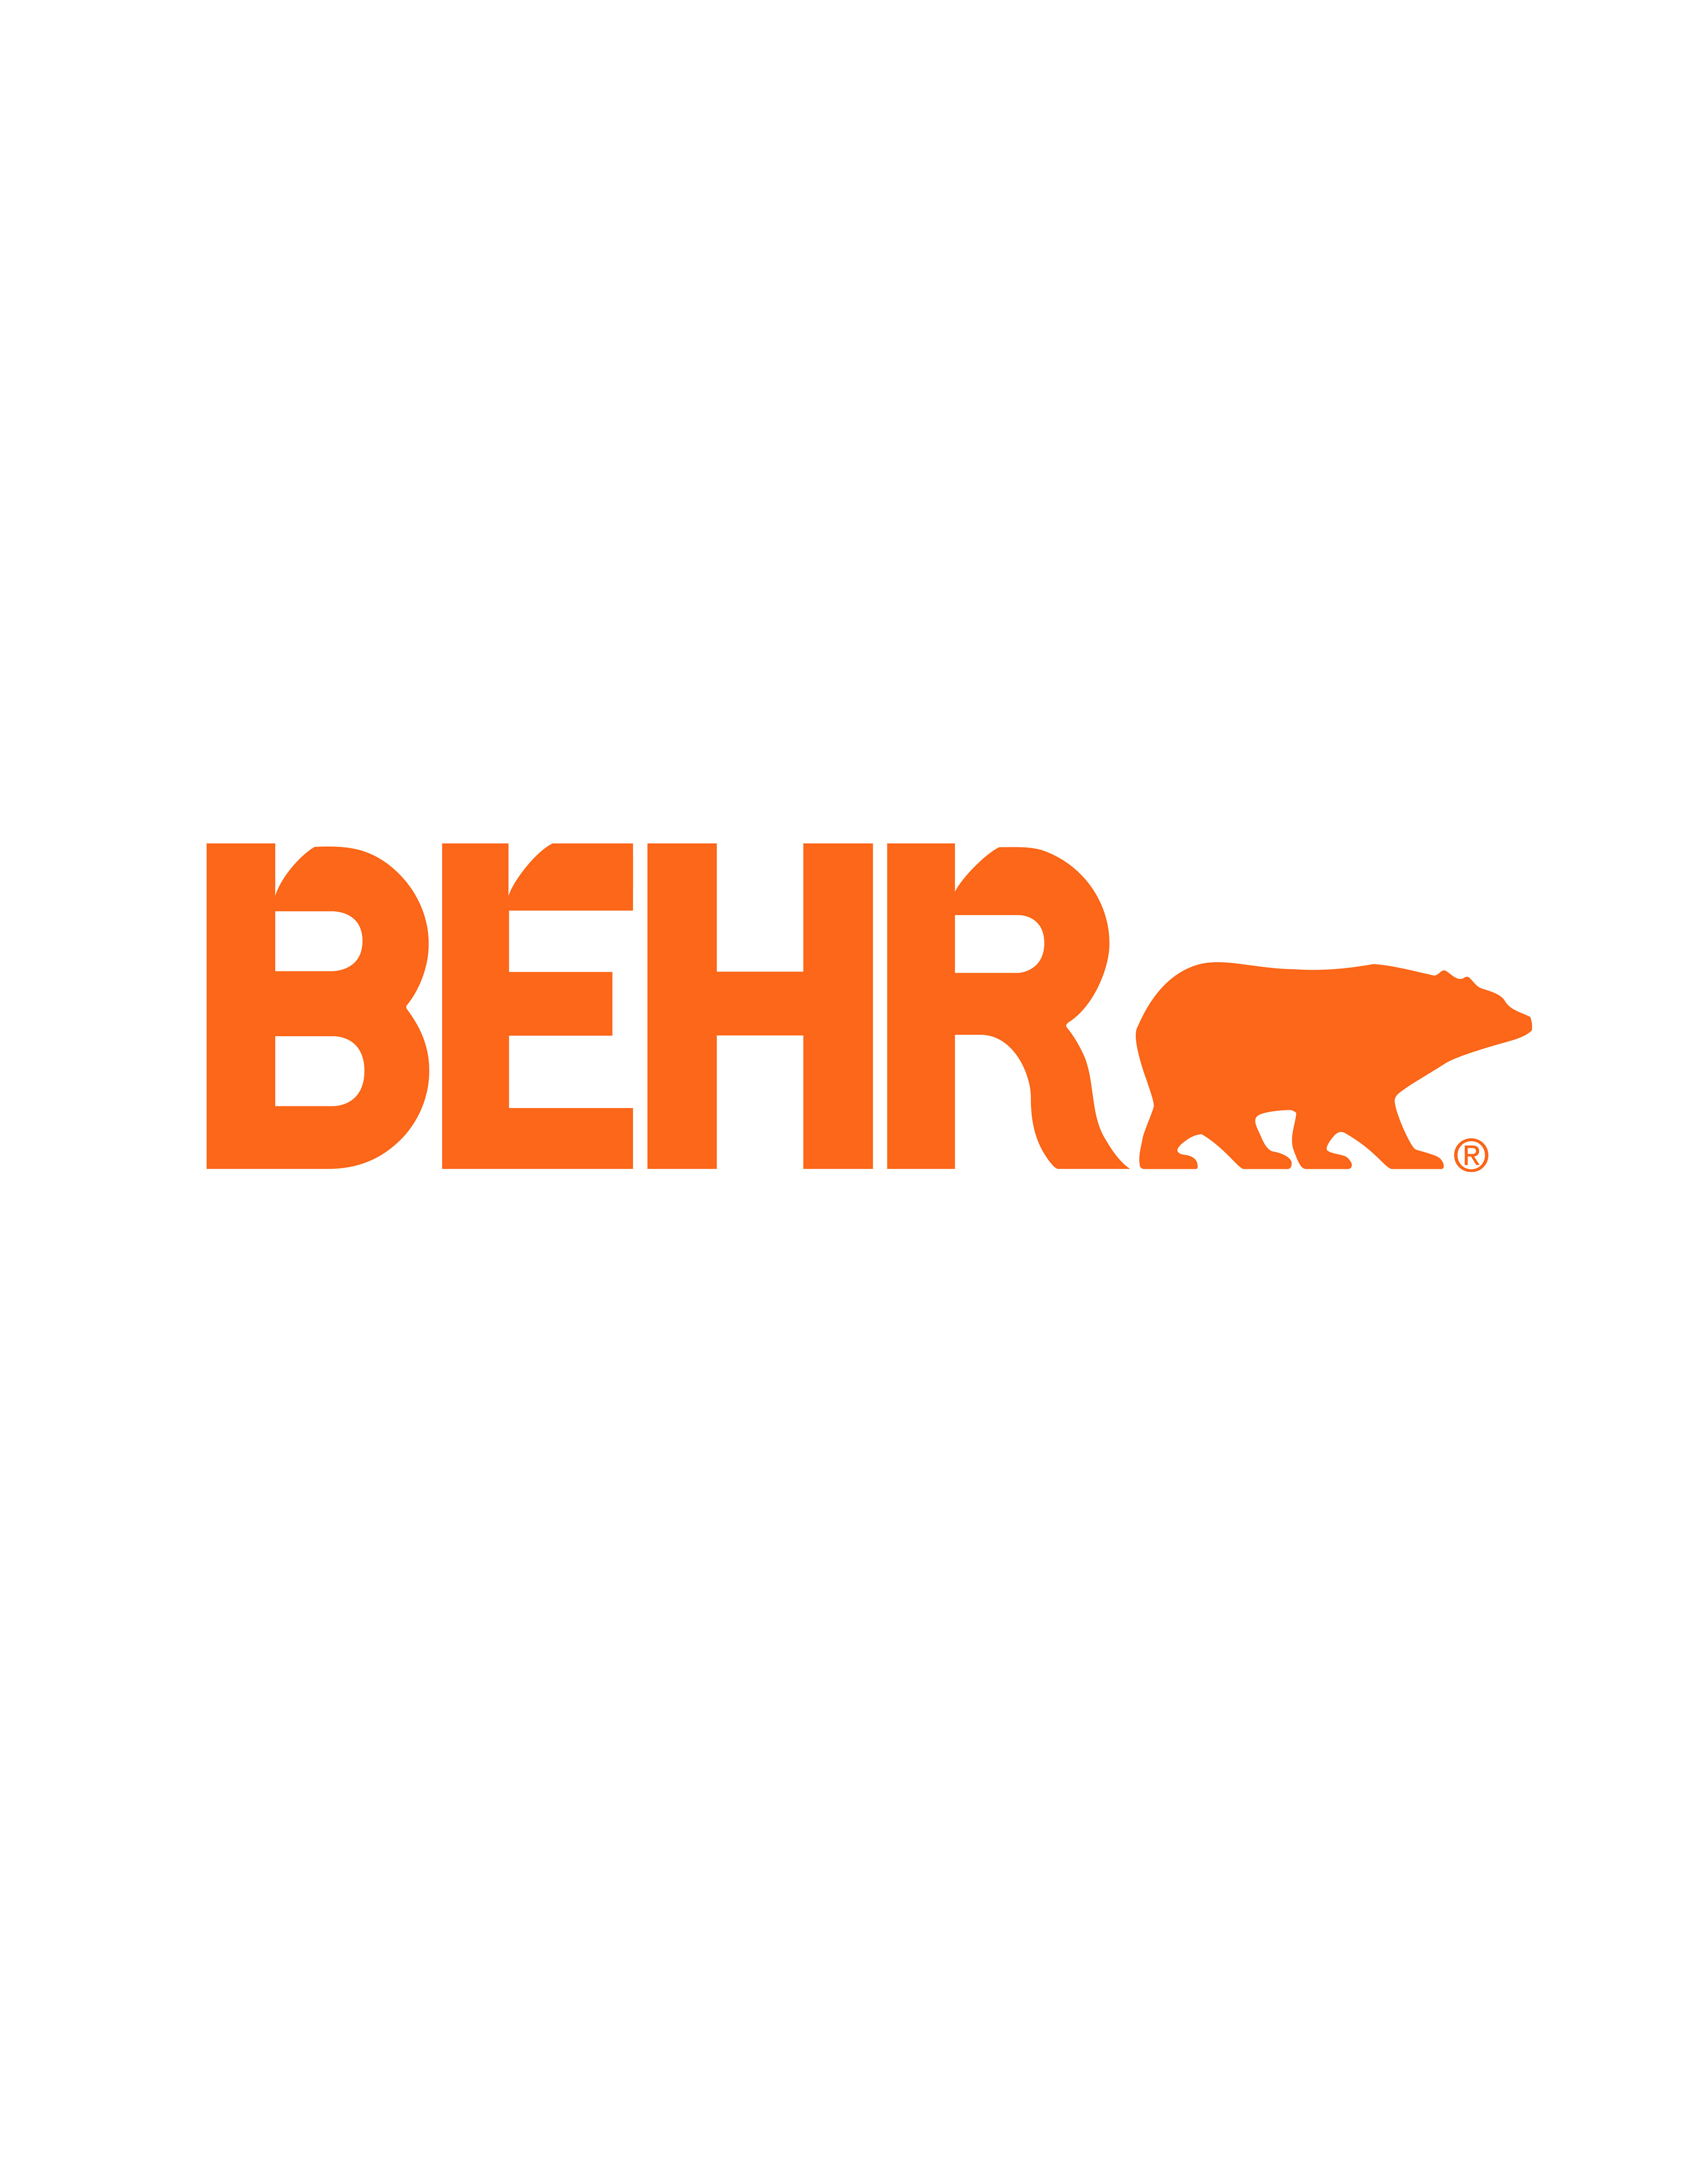 behr paint logos rh logolynx com behr paint colors behr paint looking for good gray